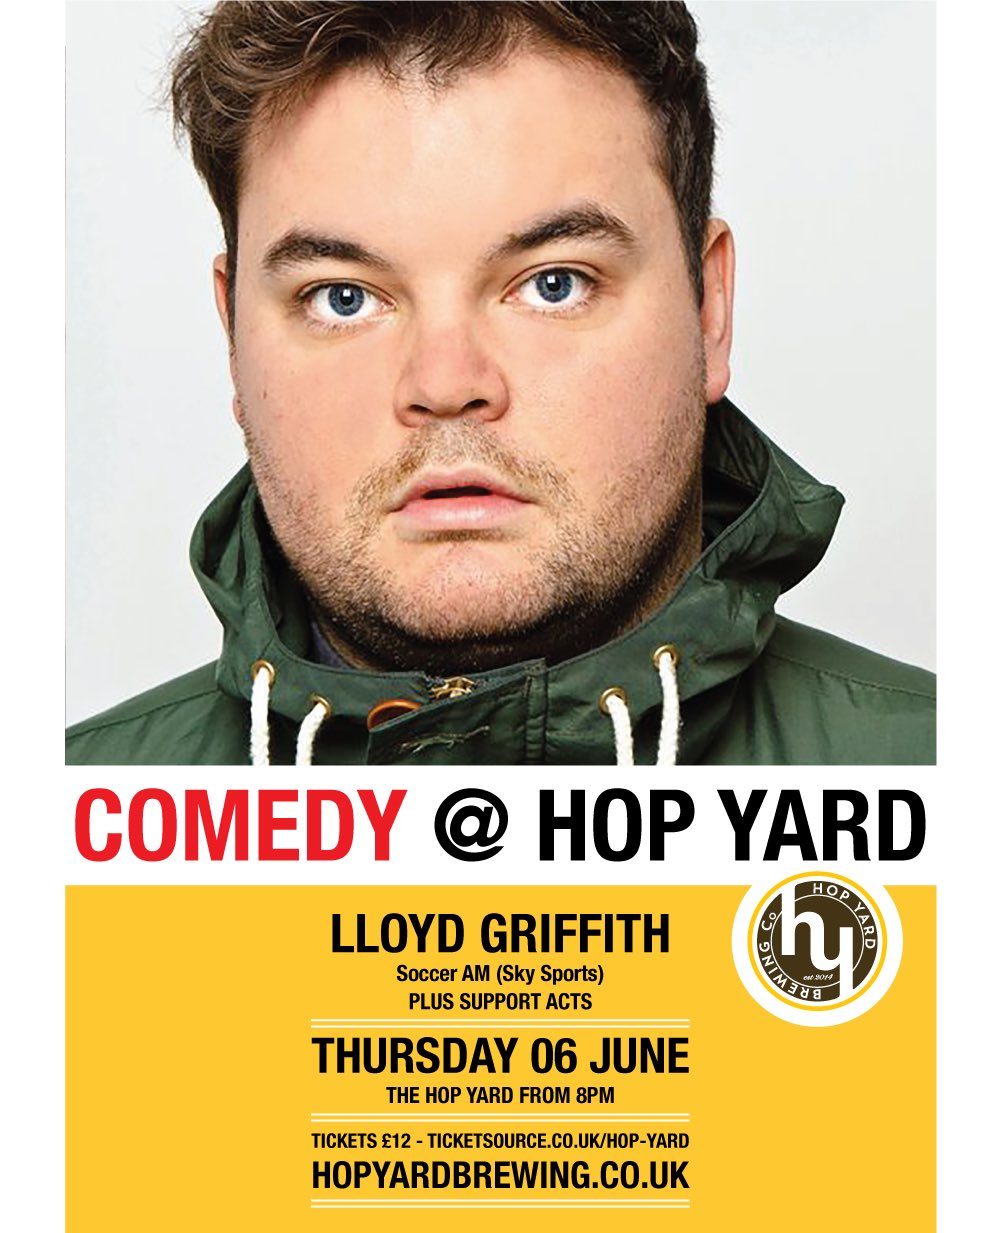 Comedy at Hop Yard - Lloyd Griffith banner image